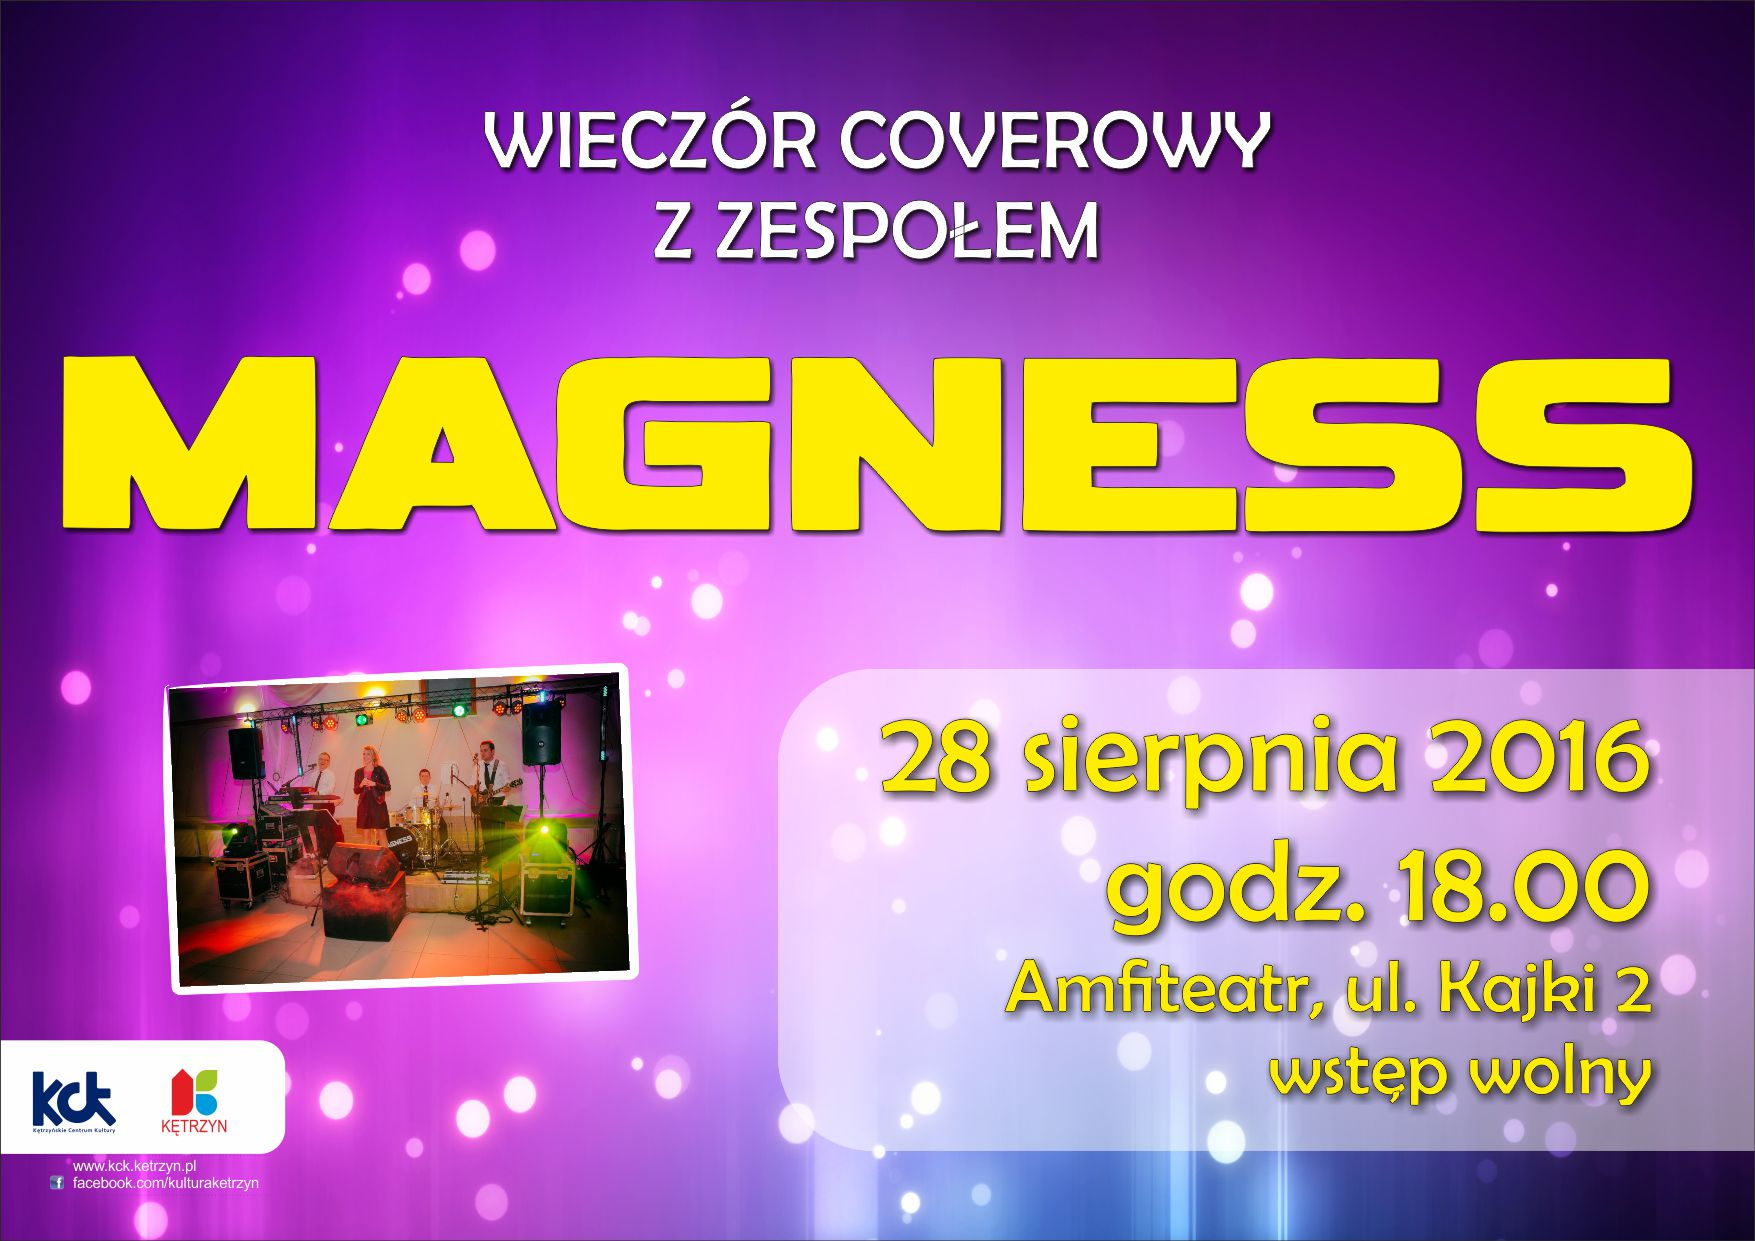 magness 2016